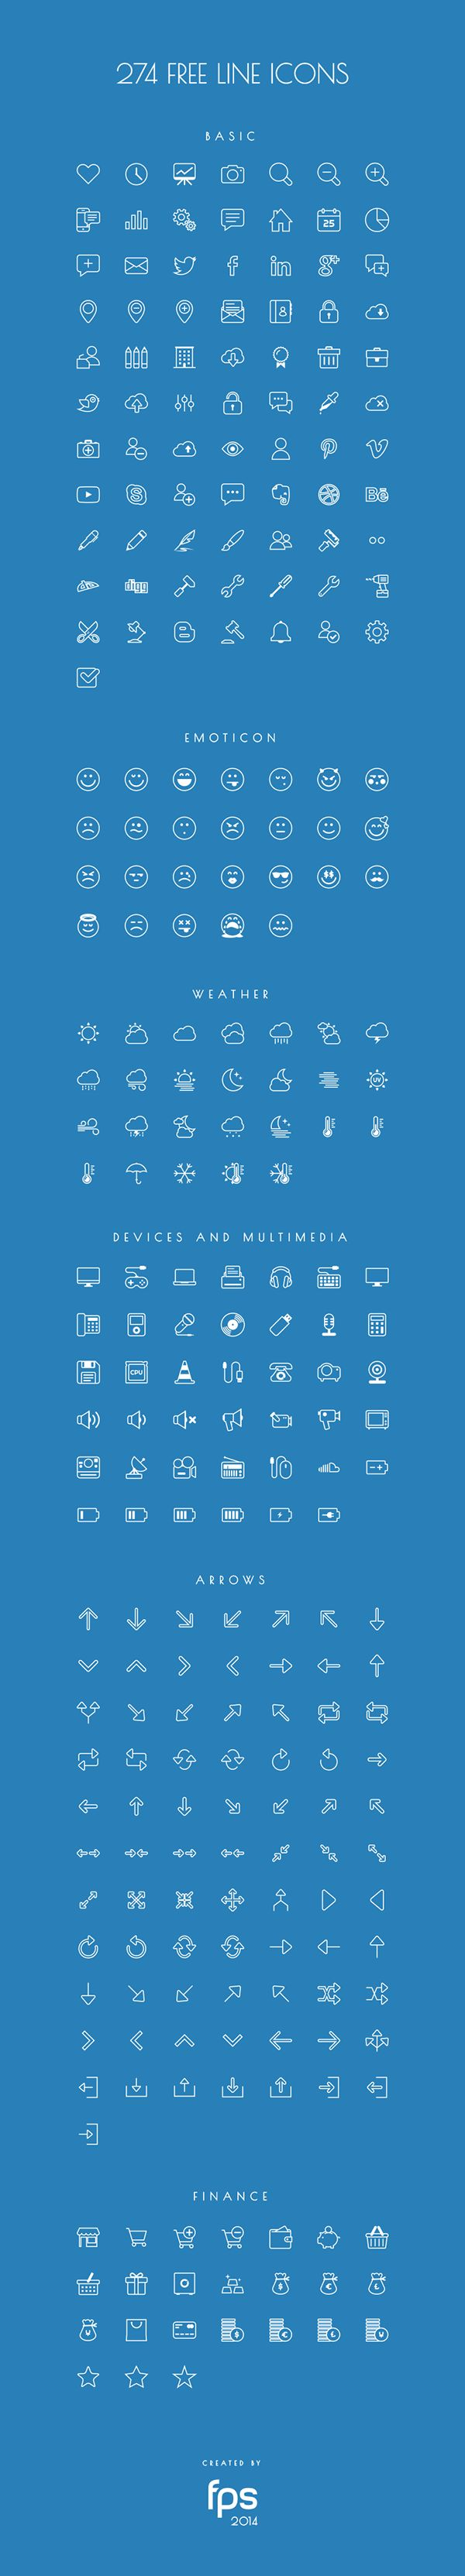 274 Vector Line Icons for free on Behance                                                                                                                                                                                 Mehr